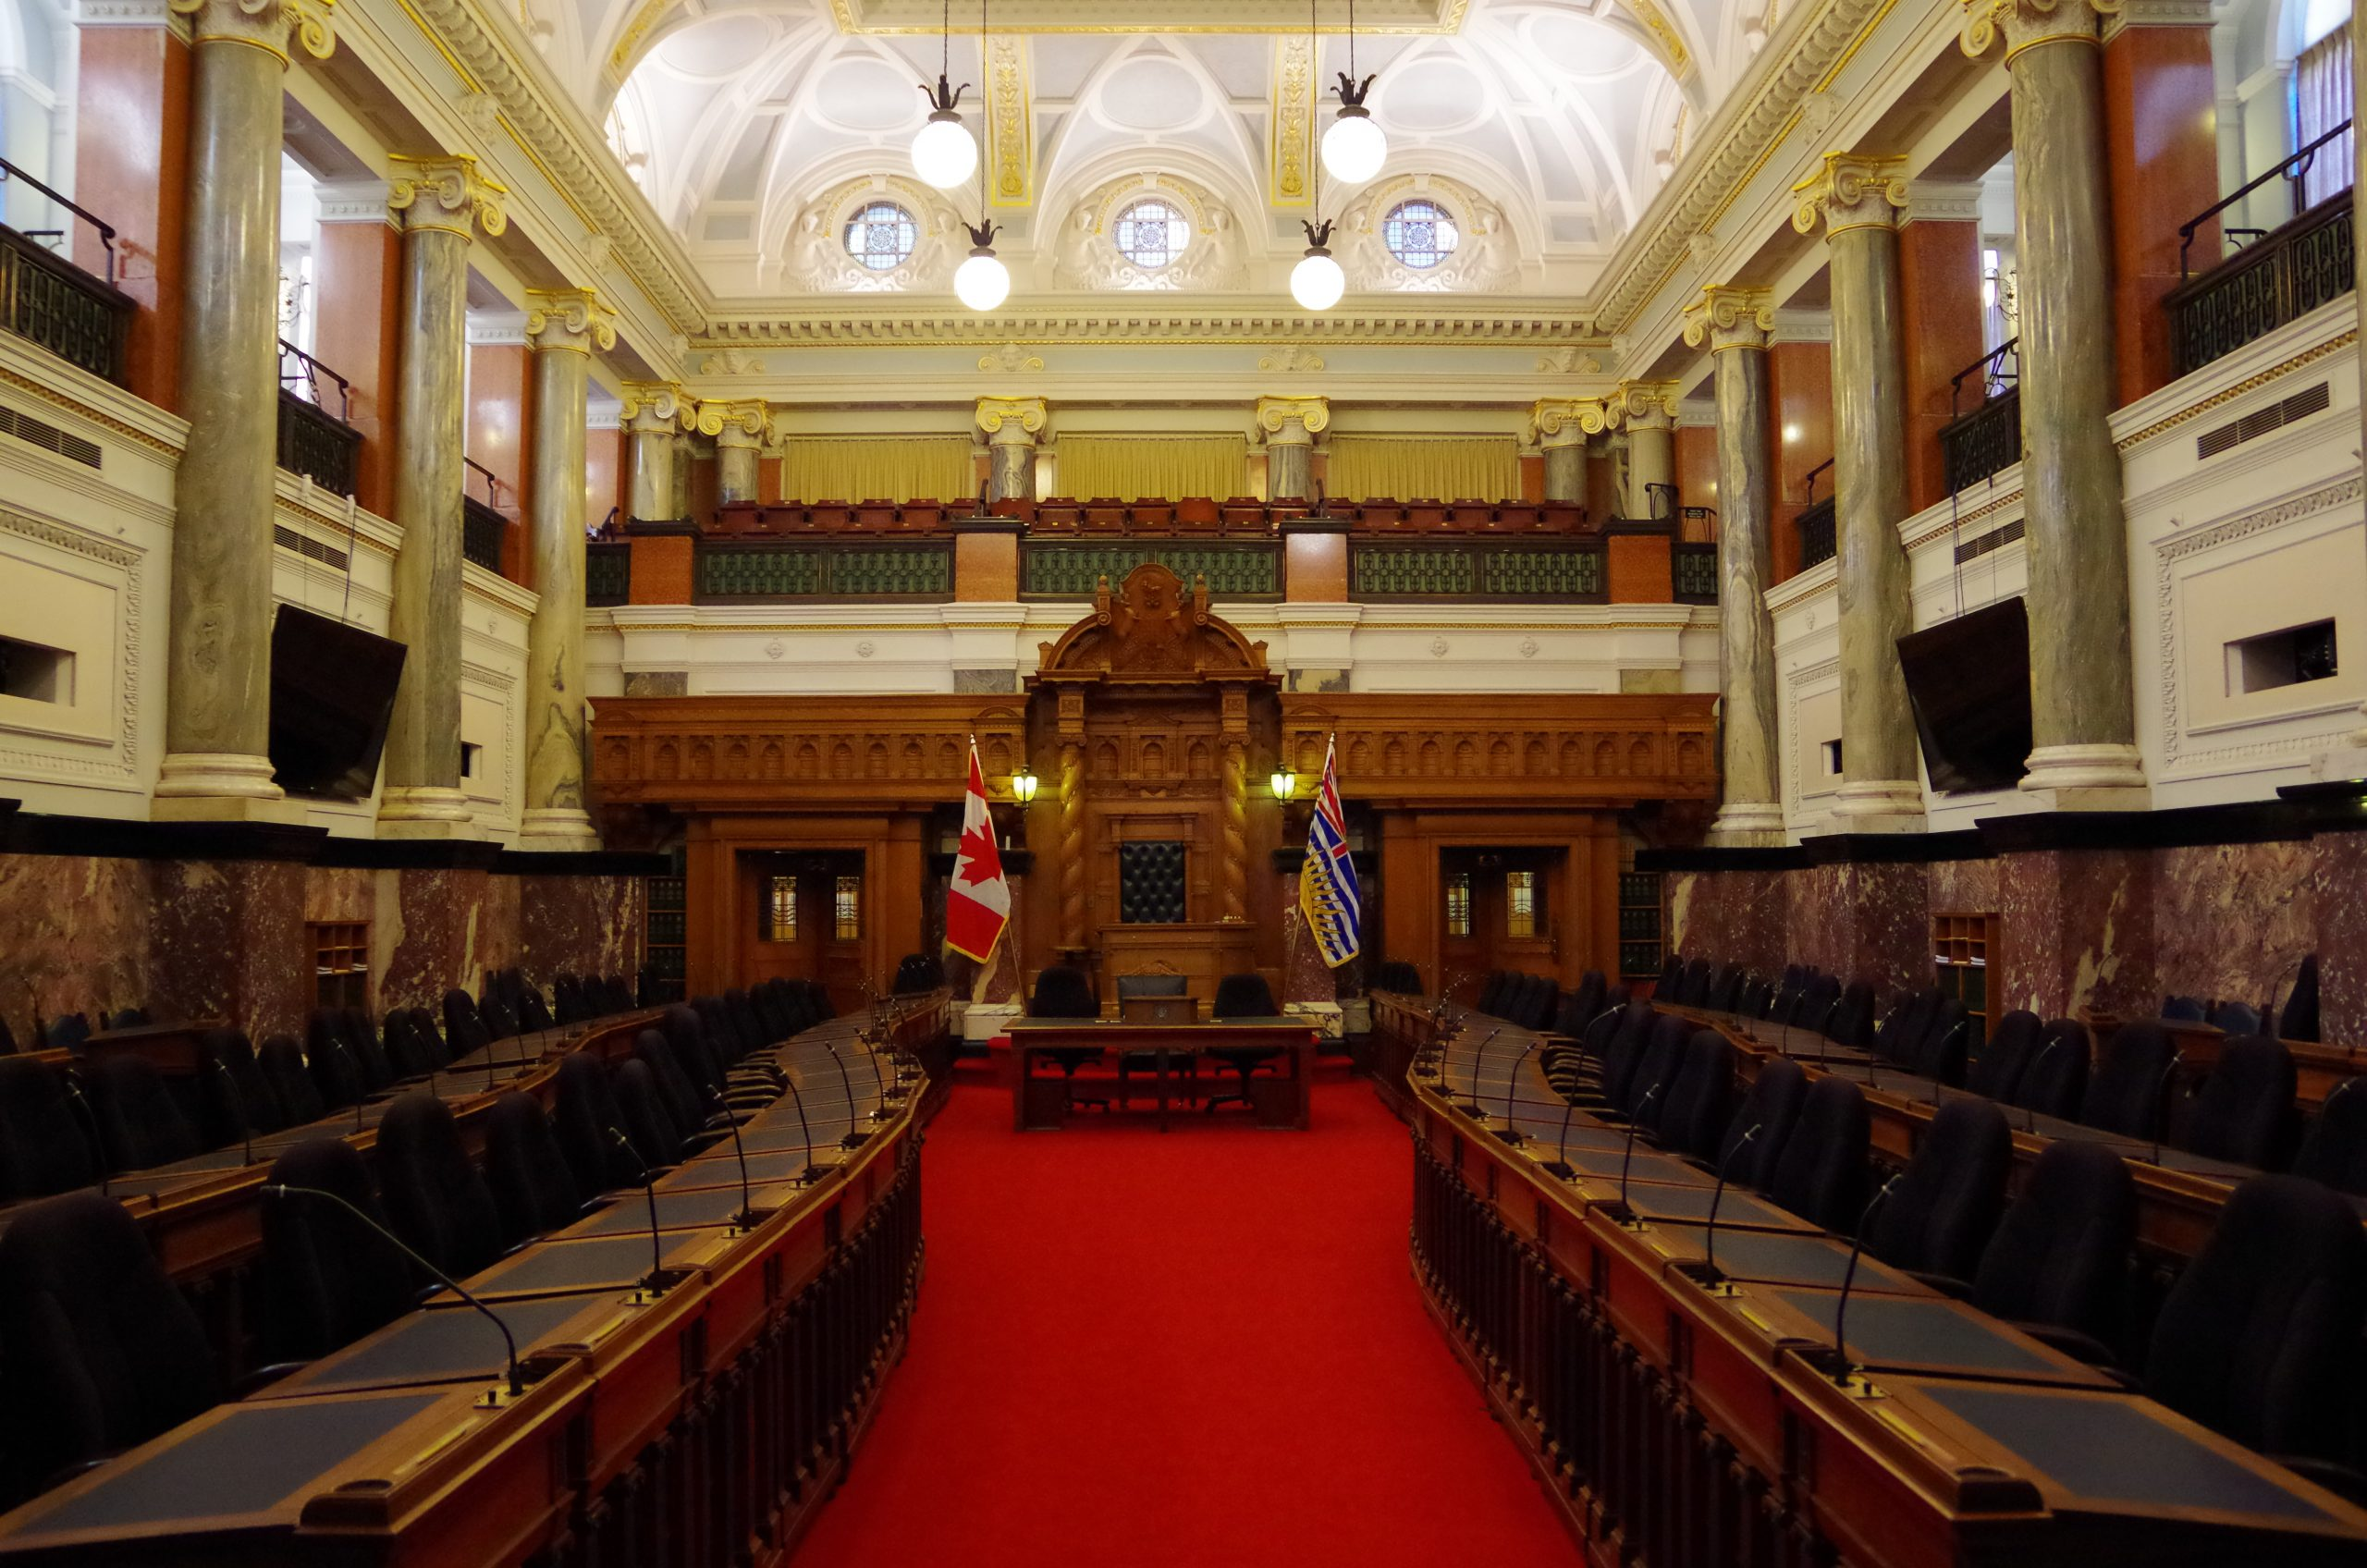 Inside the BC Parliament Building